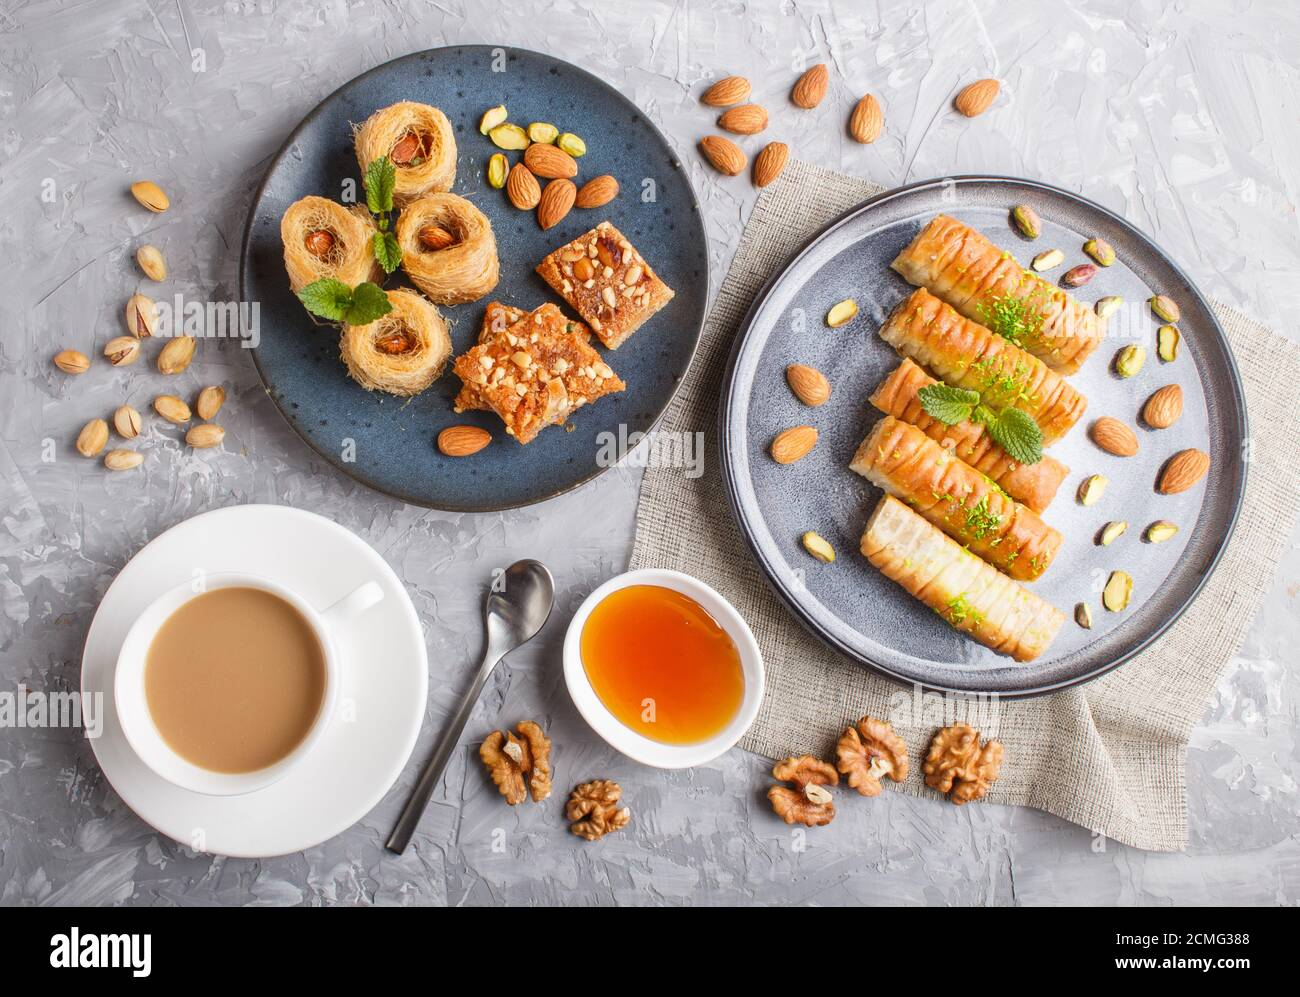 Set of various traditional arabic sweets: baklava, kunafa, basbus in  ceramic plates on a gray concrete background. top view, flat lay. Stock Photo